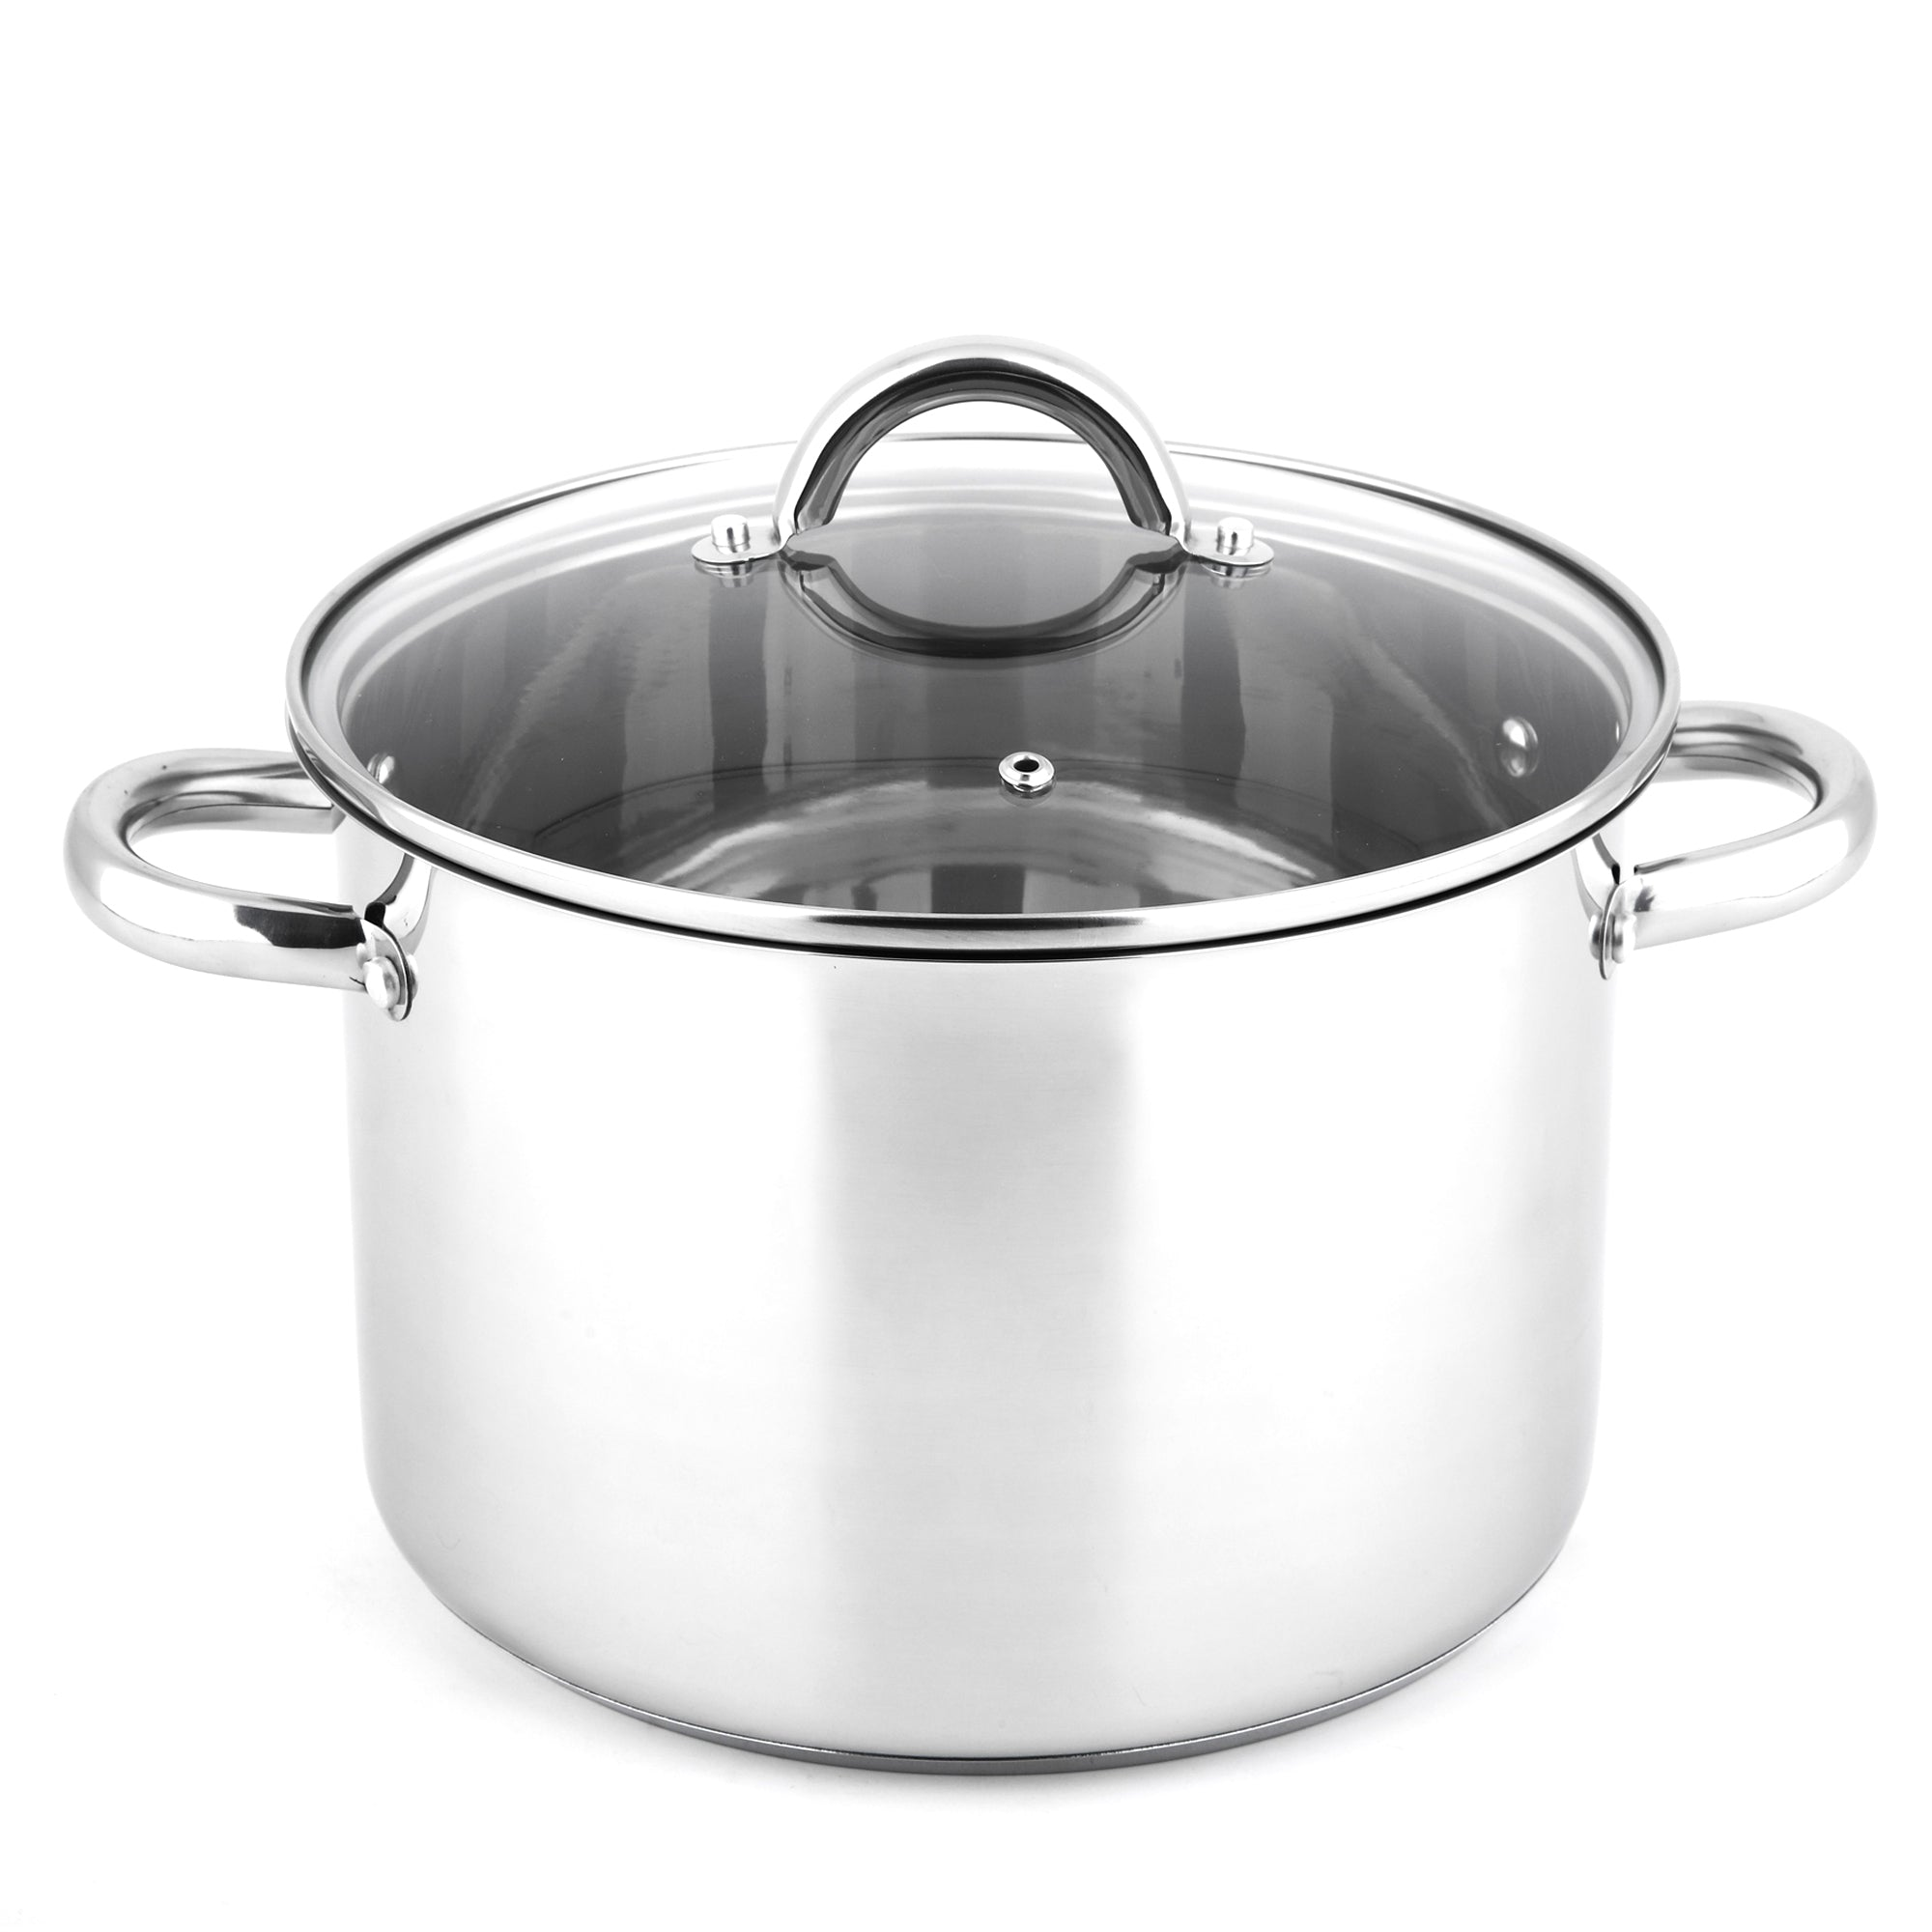 "9 2/5"" Stainless Steel Stockpot & Lid"